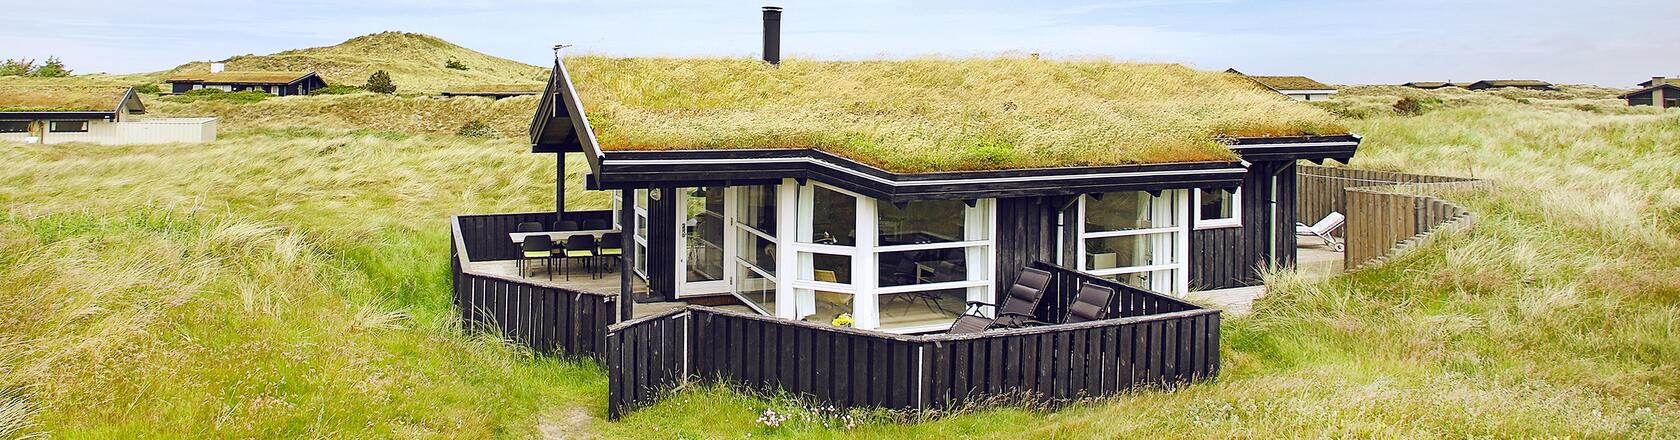 Svankjær in Denmark - Rent a holiday home  with DanCenter